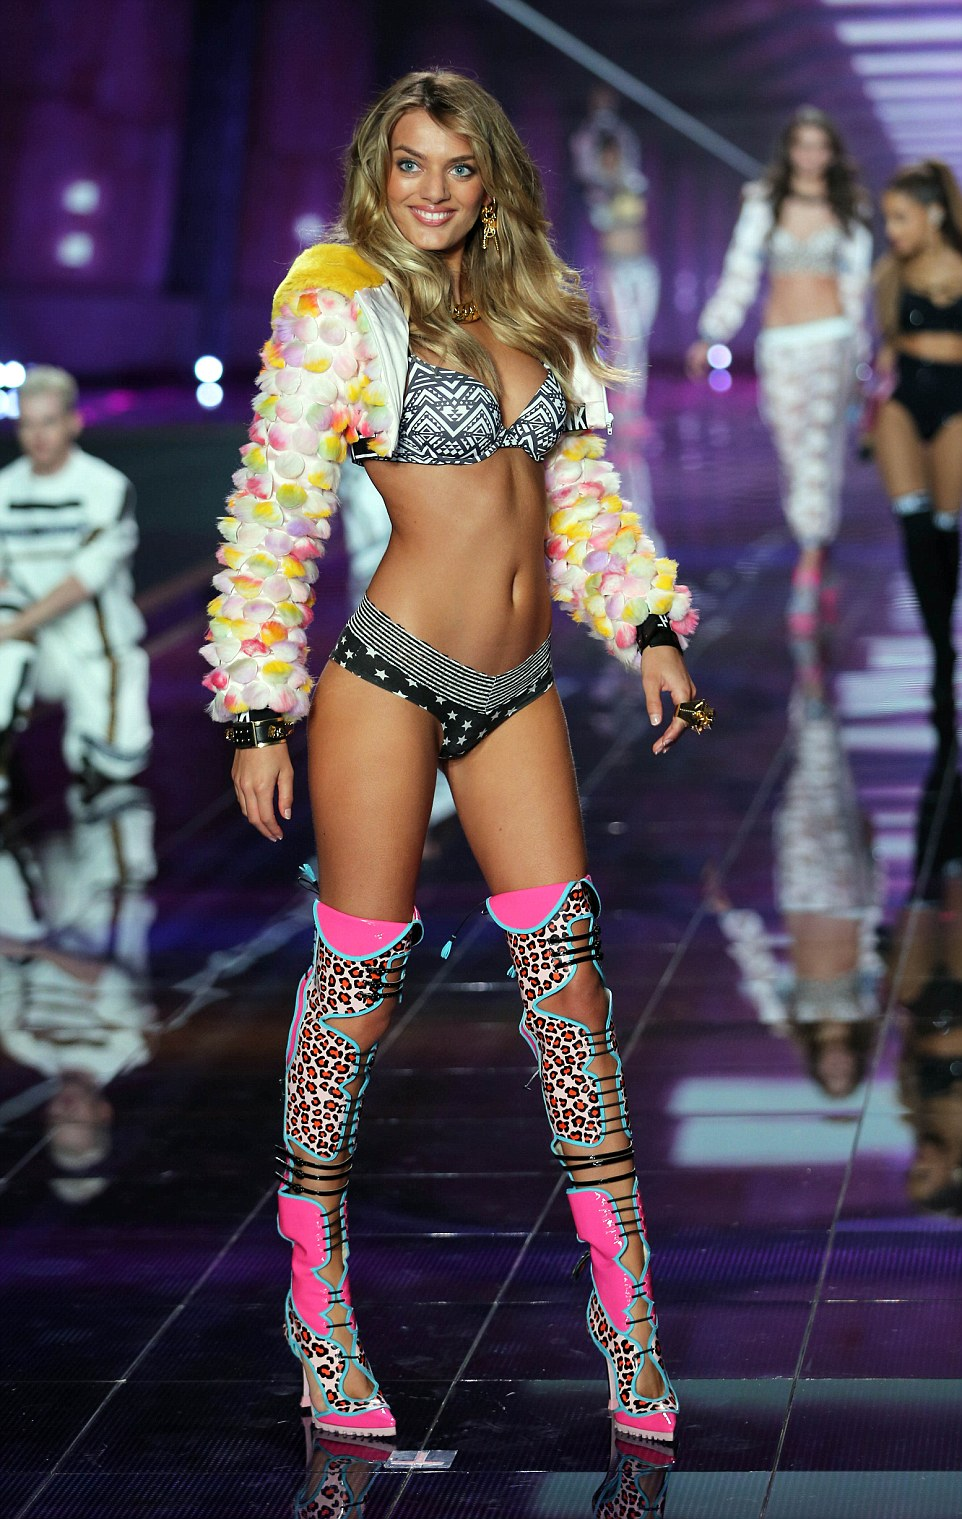 Over the knee funk: They teamed leopard print lace-up knee boots with their tiny items of lingerie and pom-pom jackets